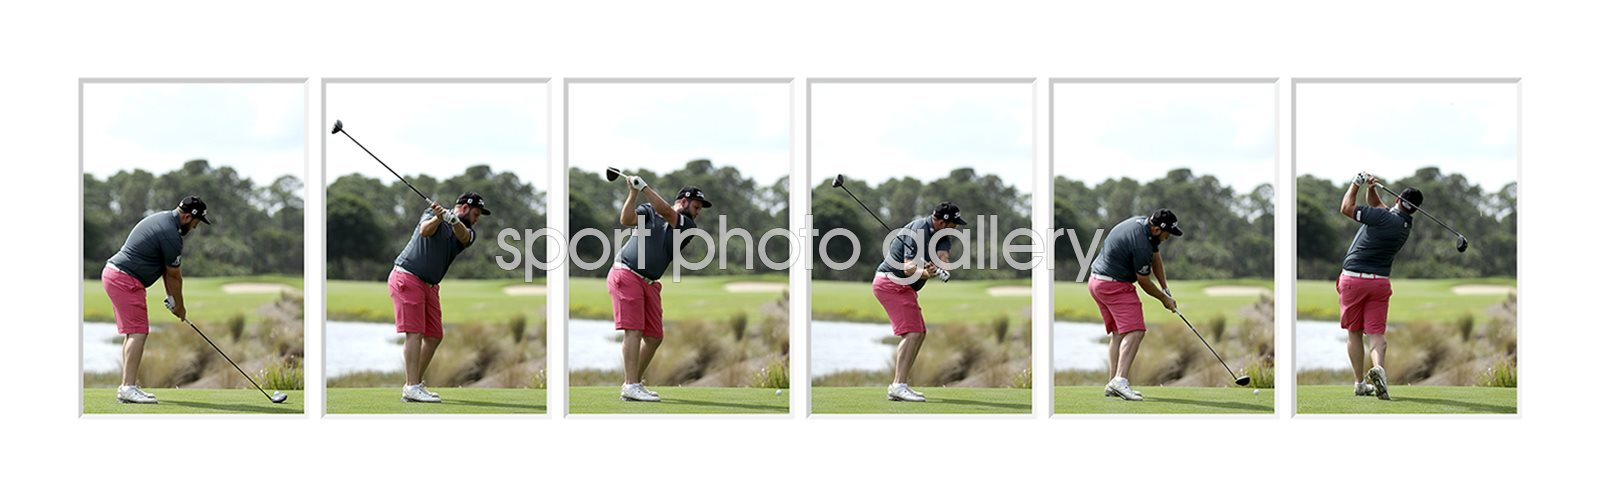 "Andrew ""Beef"" Johnston 6 Stage Swing Sequence"